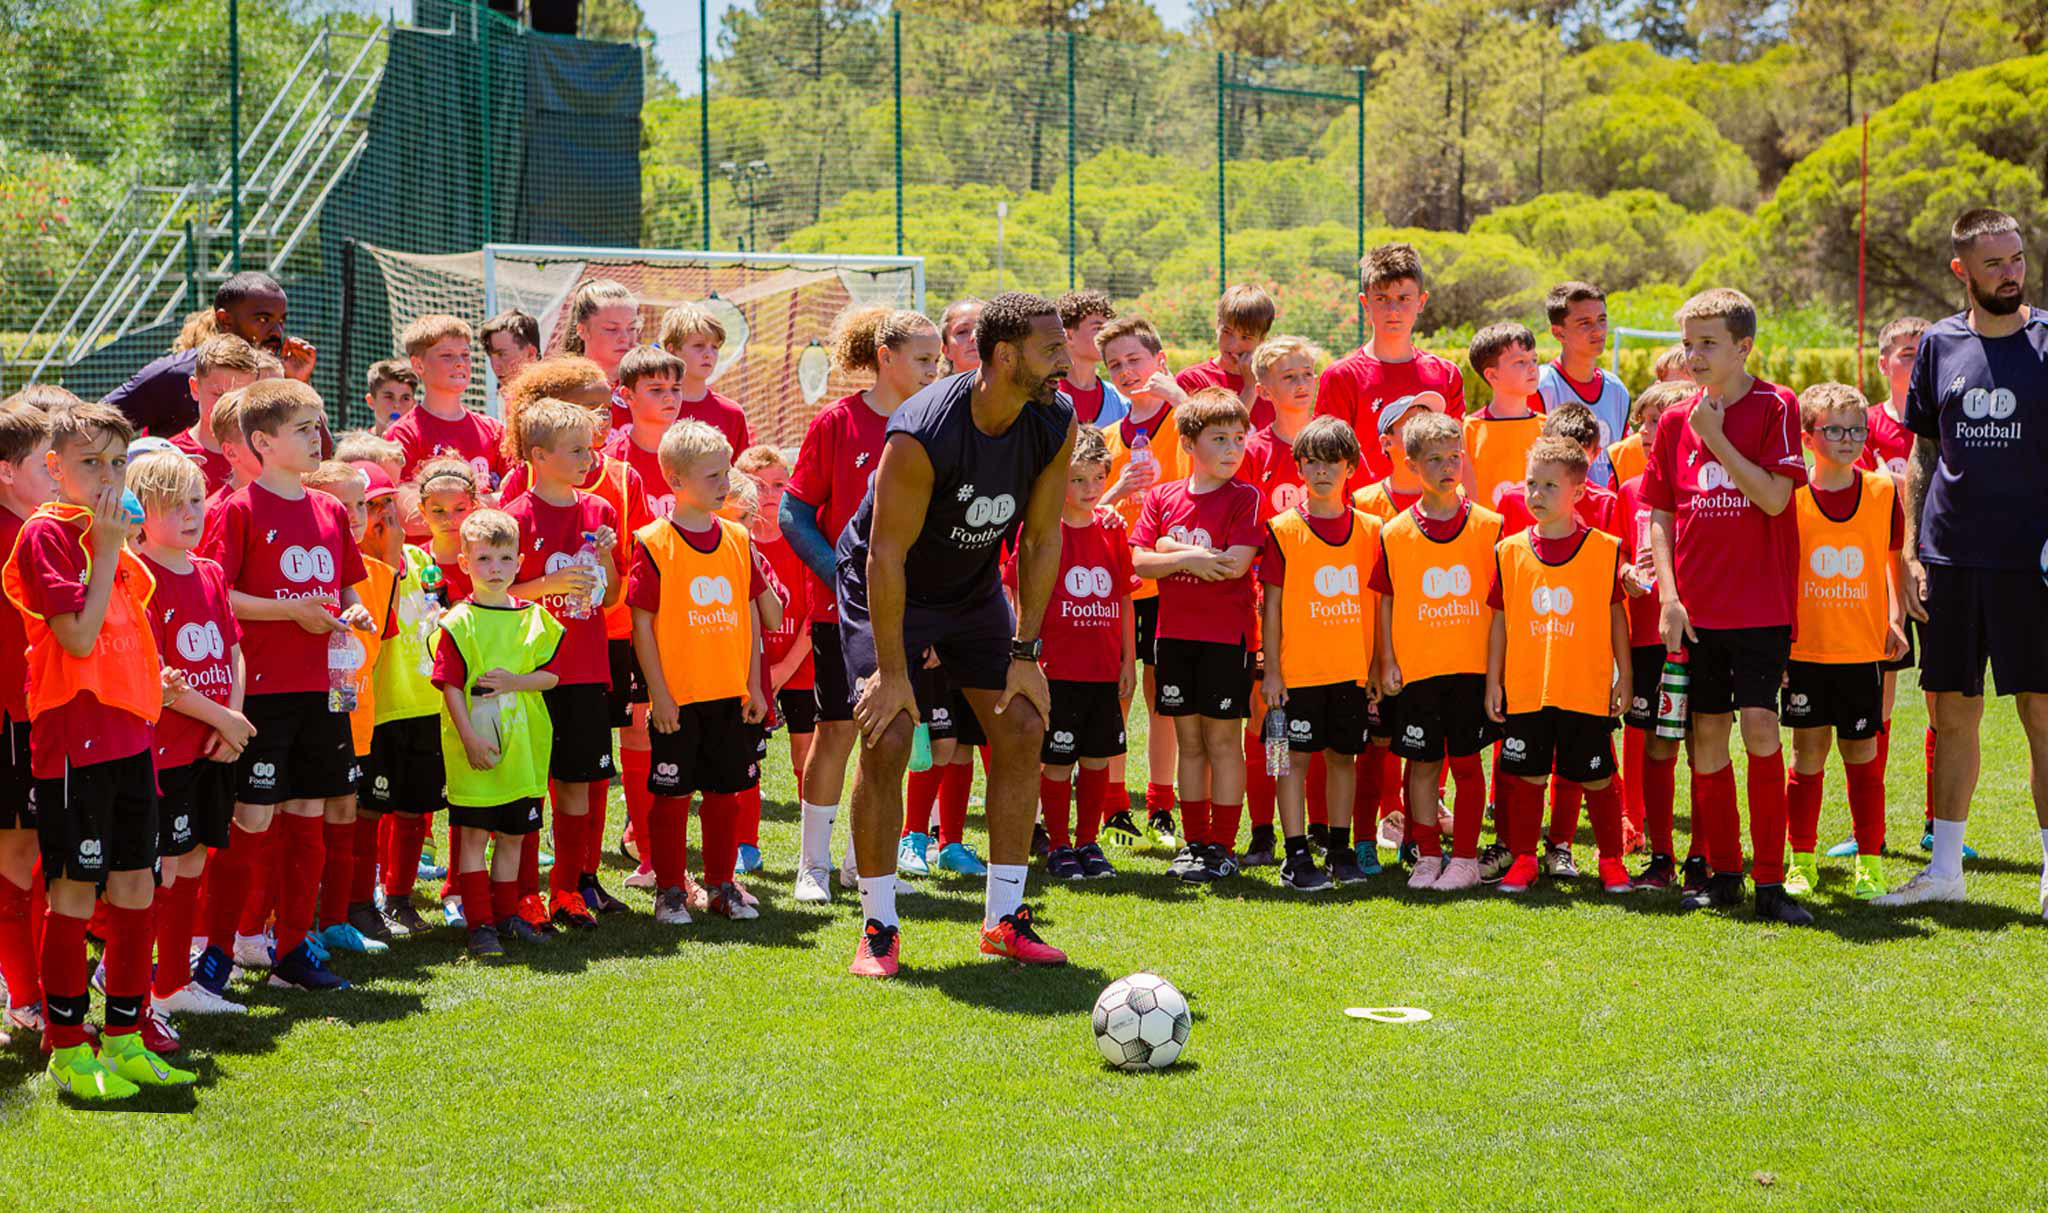 Football Coaching For Kids in The Algarve